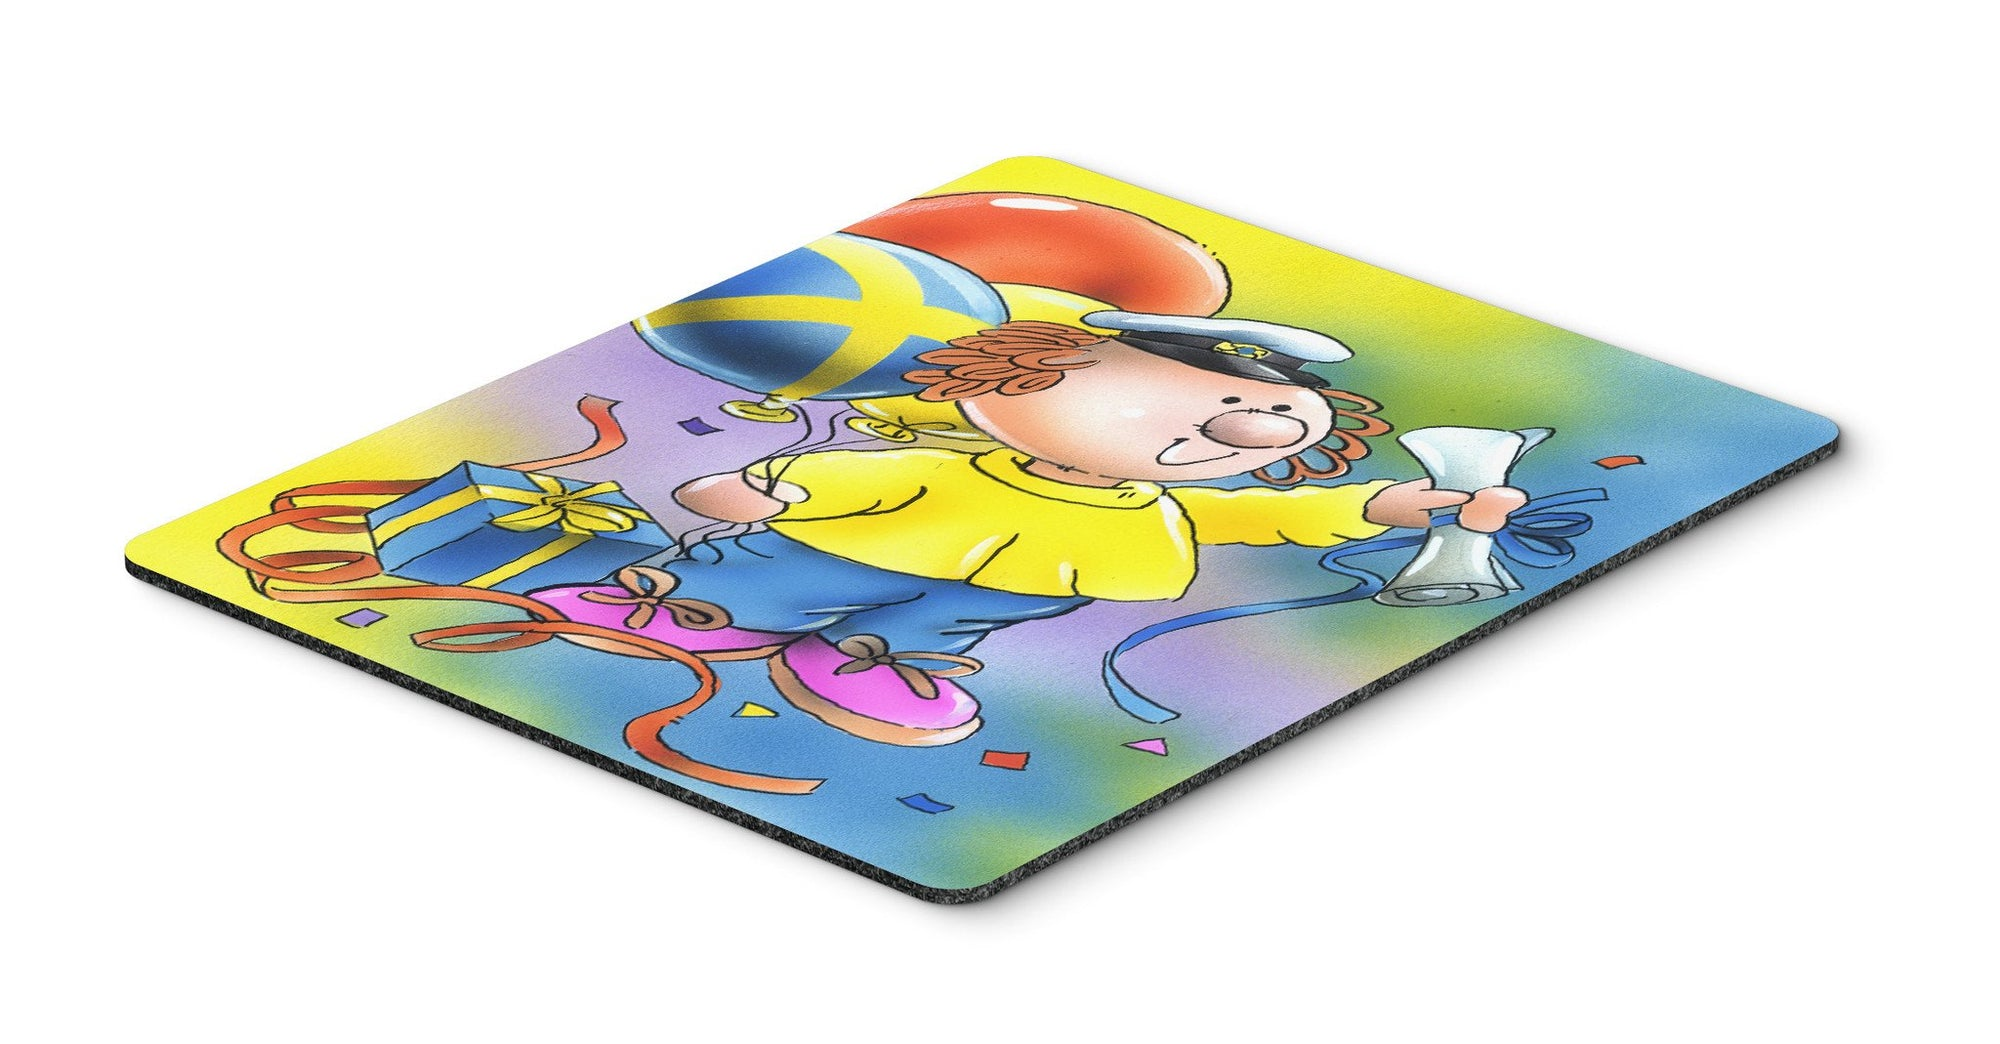 Graduation The Graduate Mouse Pad, Hot Pad or Trivet APH6011MP by Caroline's Treasures